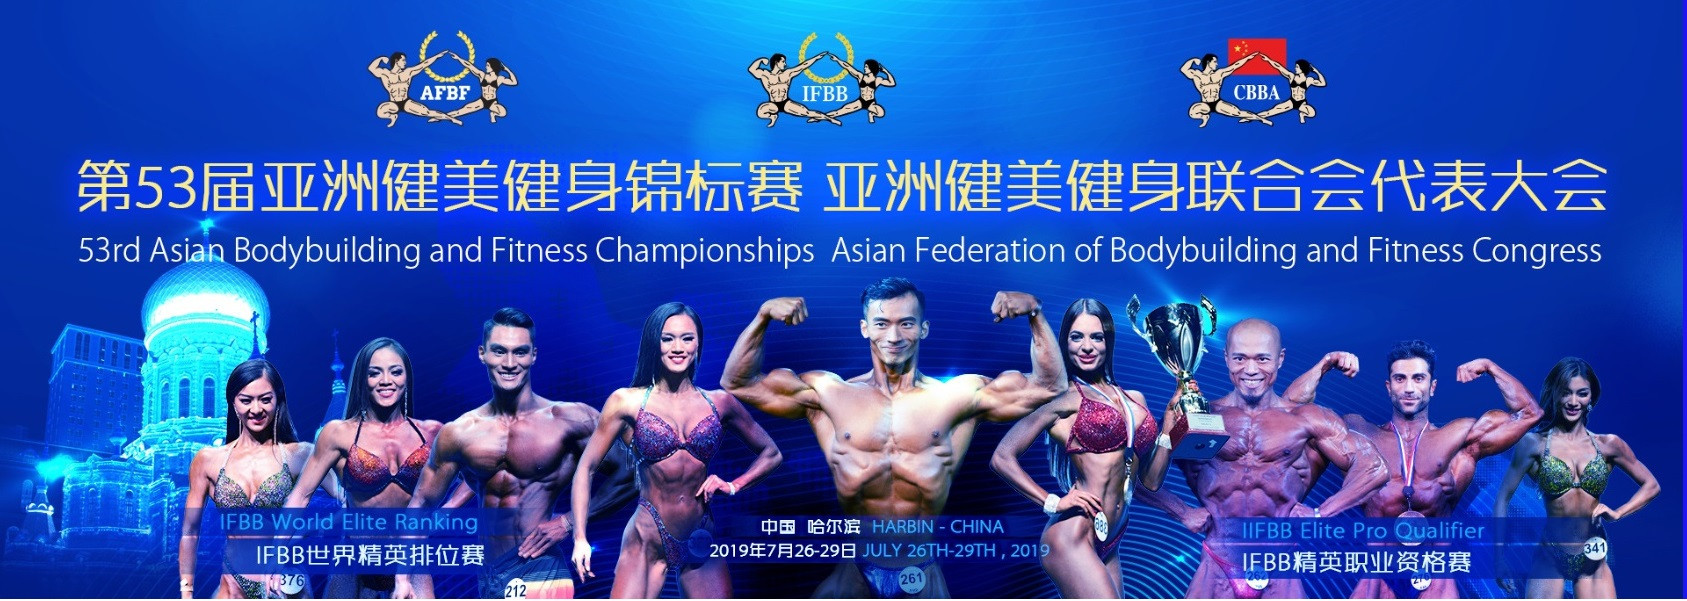 Harbin ready to host Asian Bodybuilding and Fitness Championships